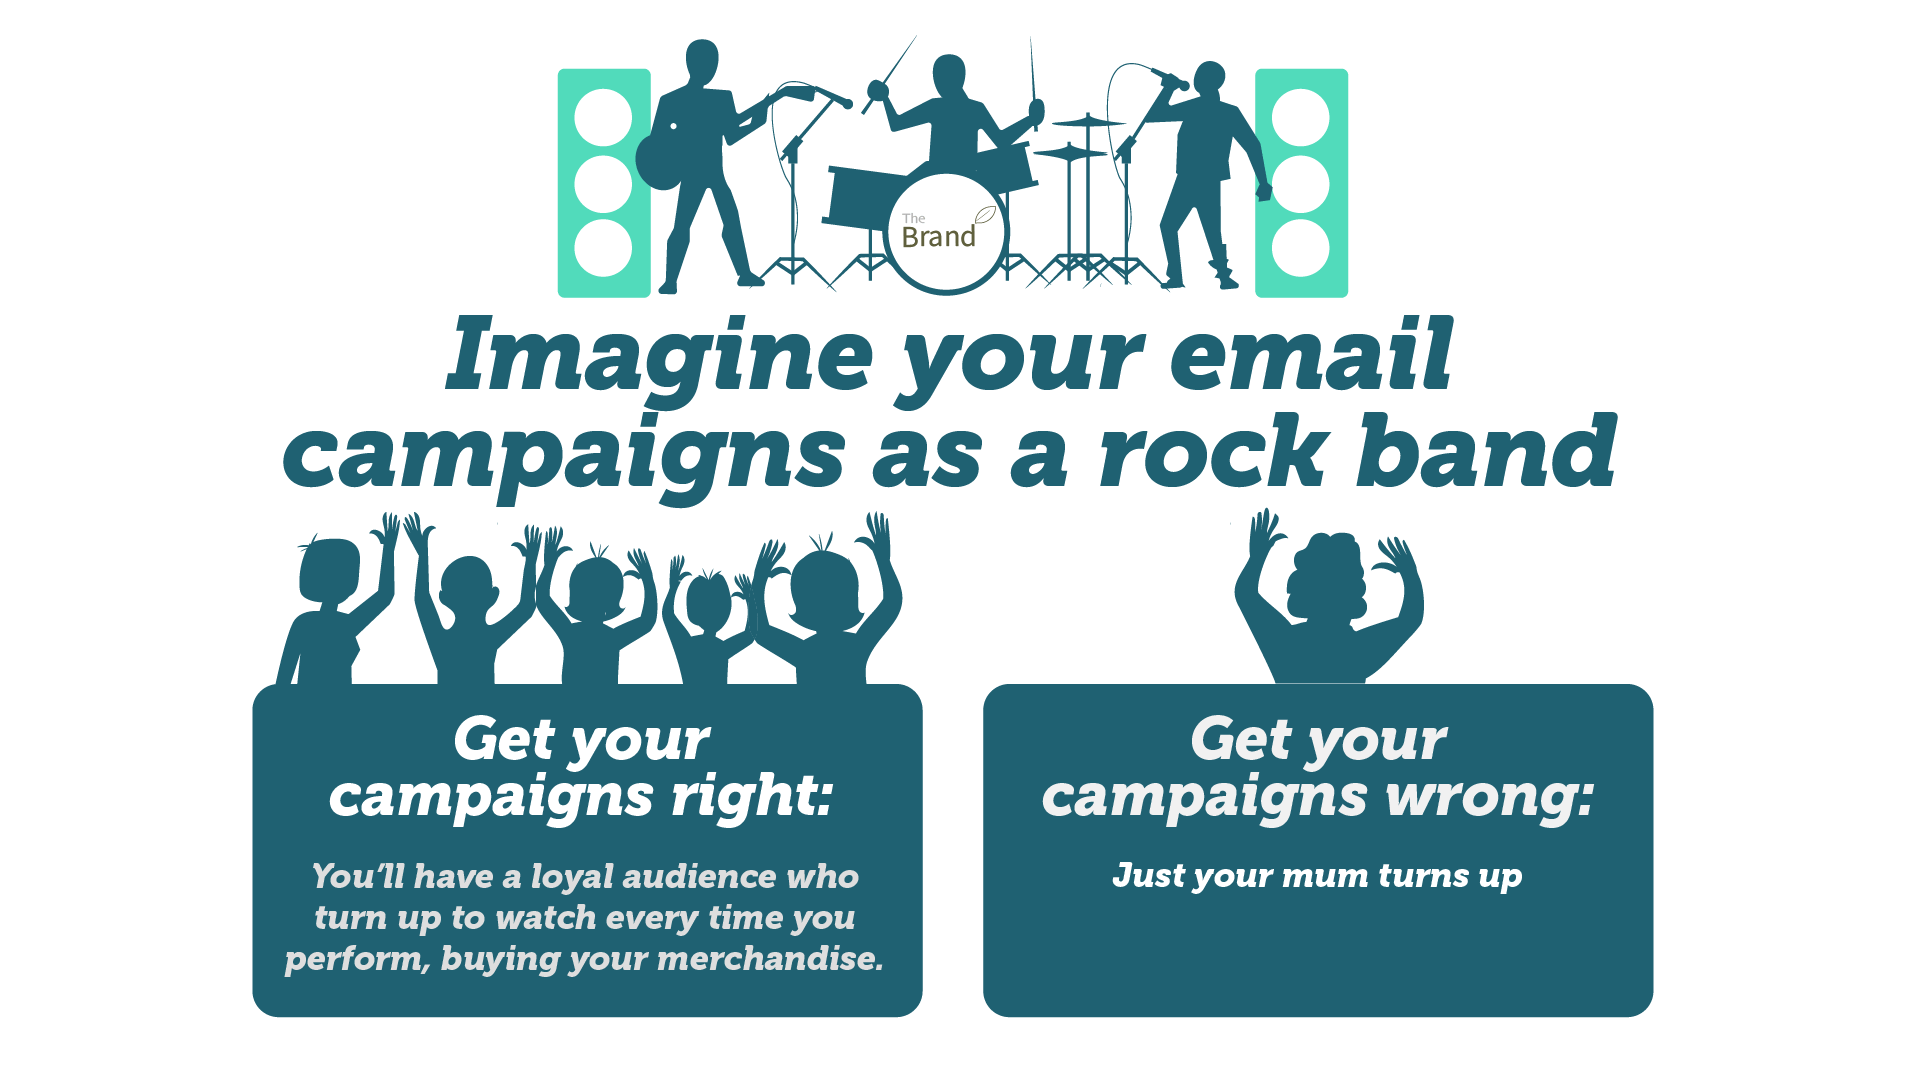 Imagine your email campaigns as a rock band